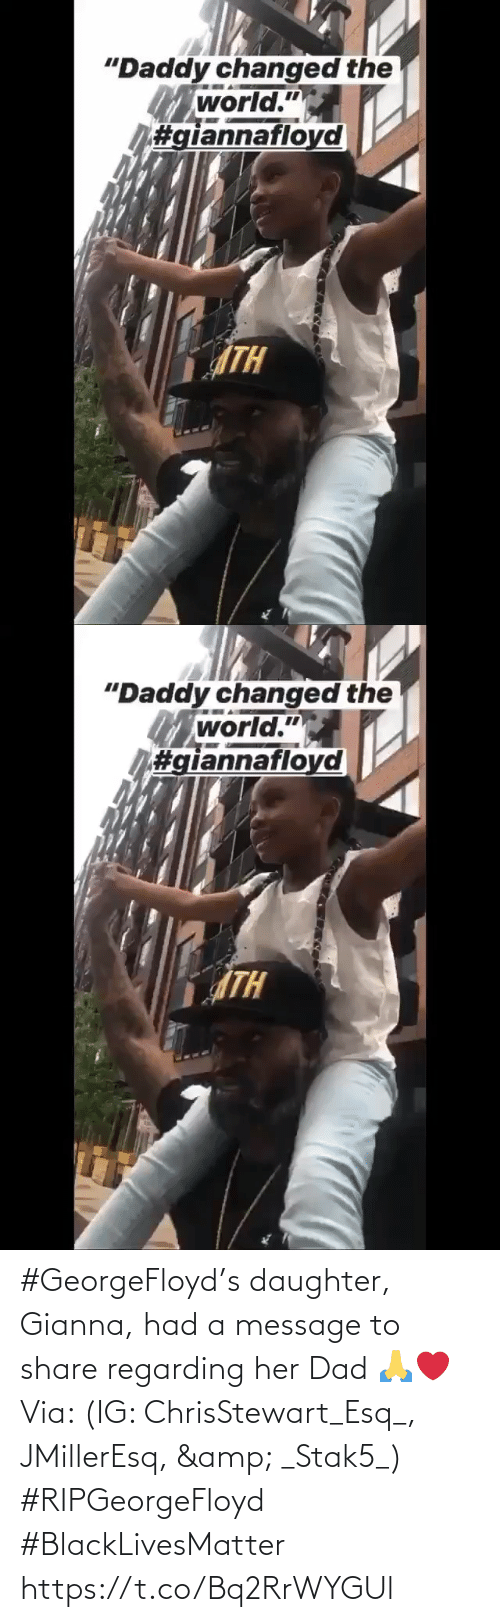 a message: #GeorgeFloyd's daughter, Gianna, had a message to share regarding her Dad 🙏❤️ Via: (IG: ChrisStewart_Esq_, JMillerEsq, & _Stak5_) #RIPGeorgeFloyd #BlackLivesMatter https://t.co/Bq2RrWYGUl